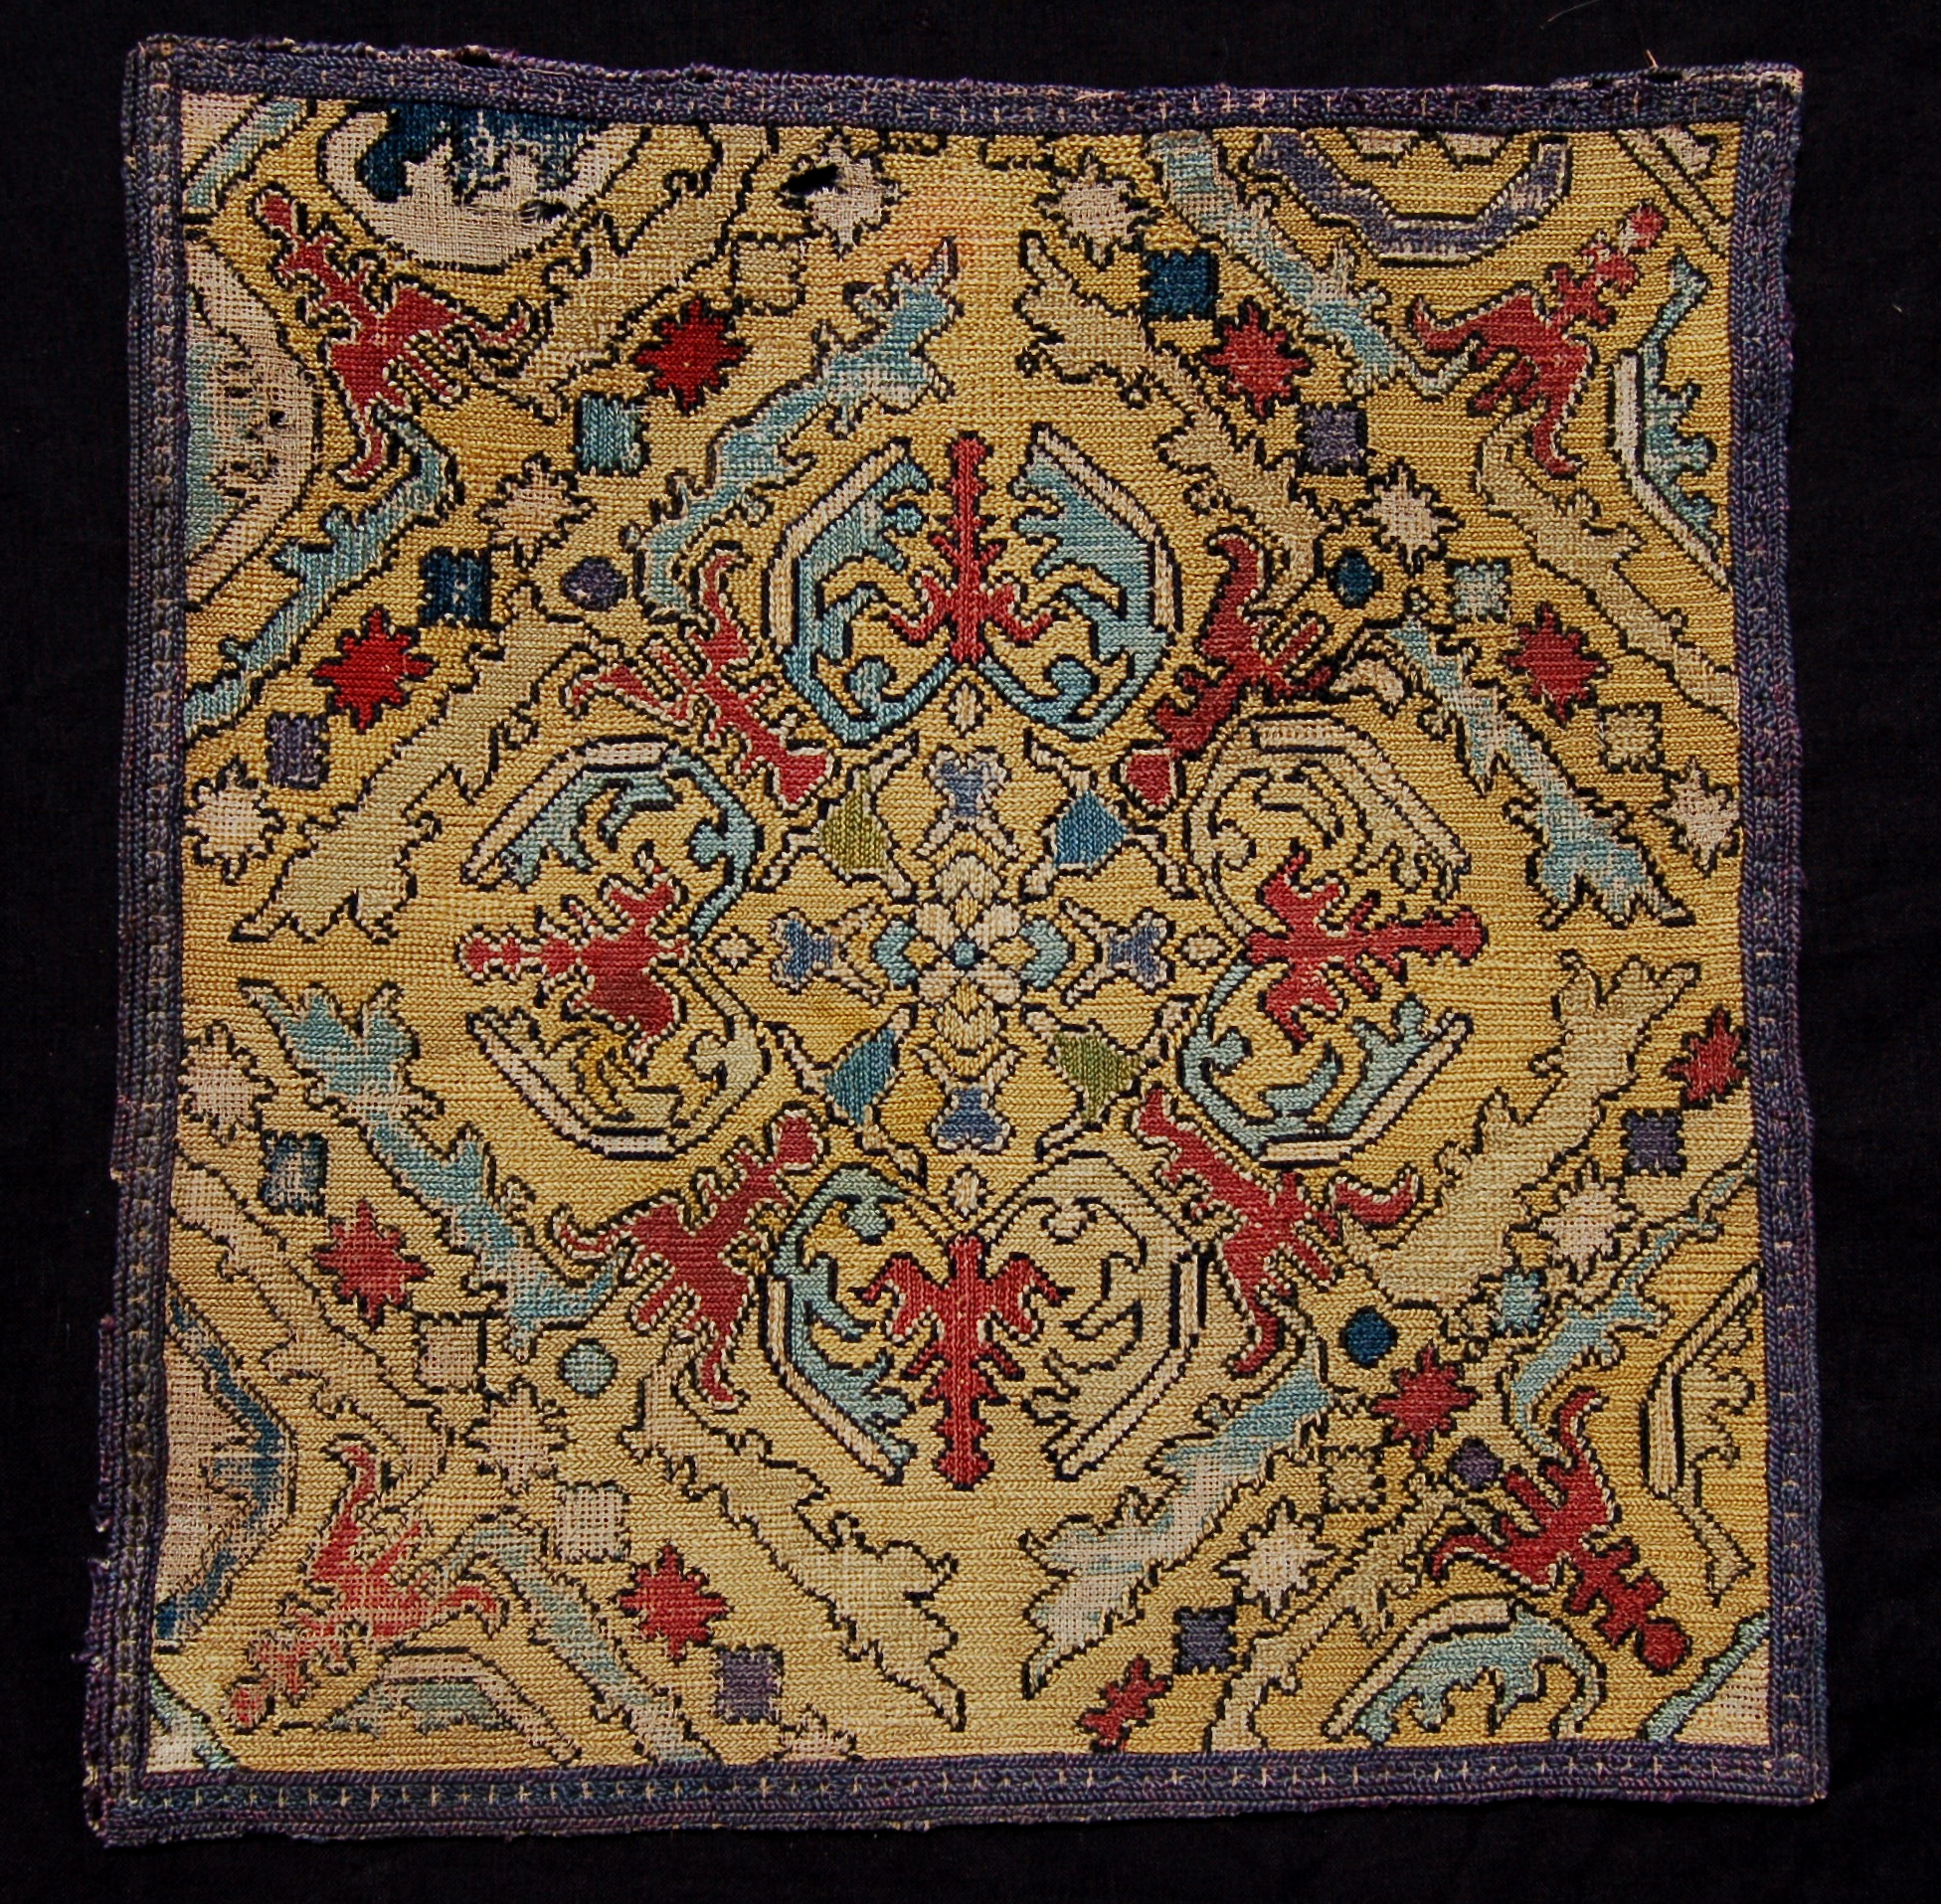 Chefchouen needlepoint embroidered square